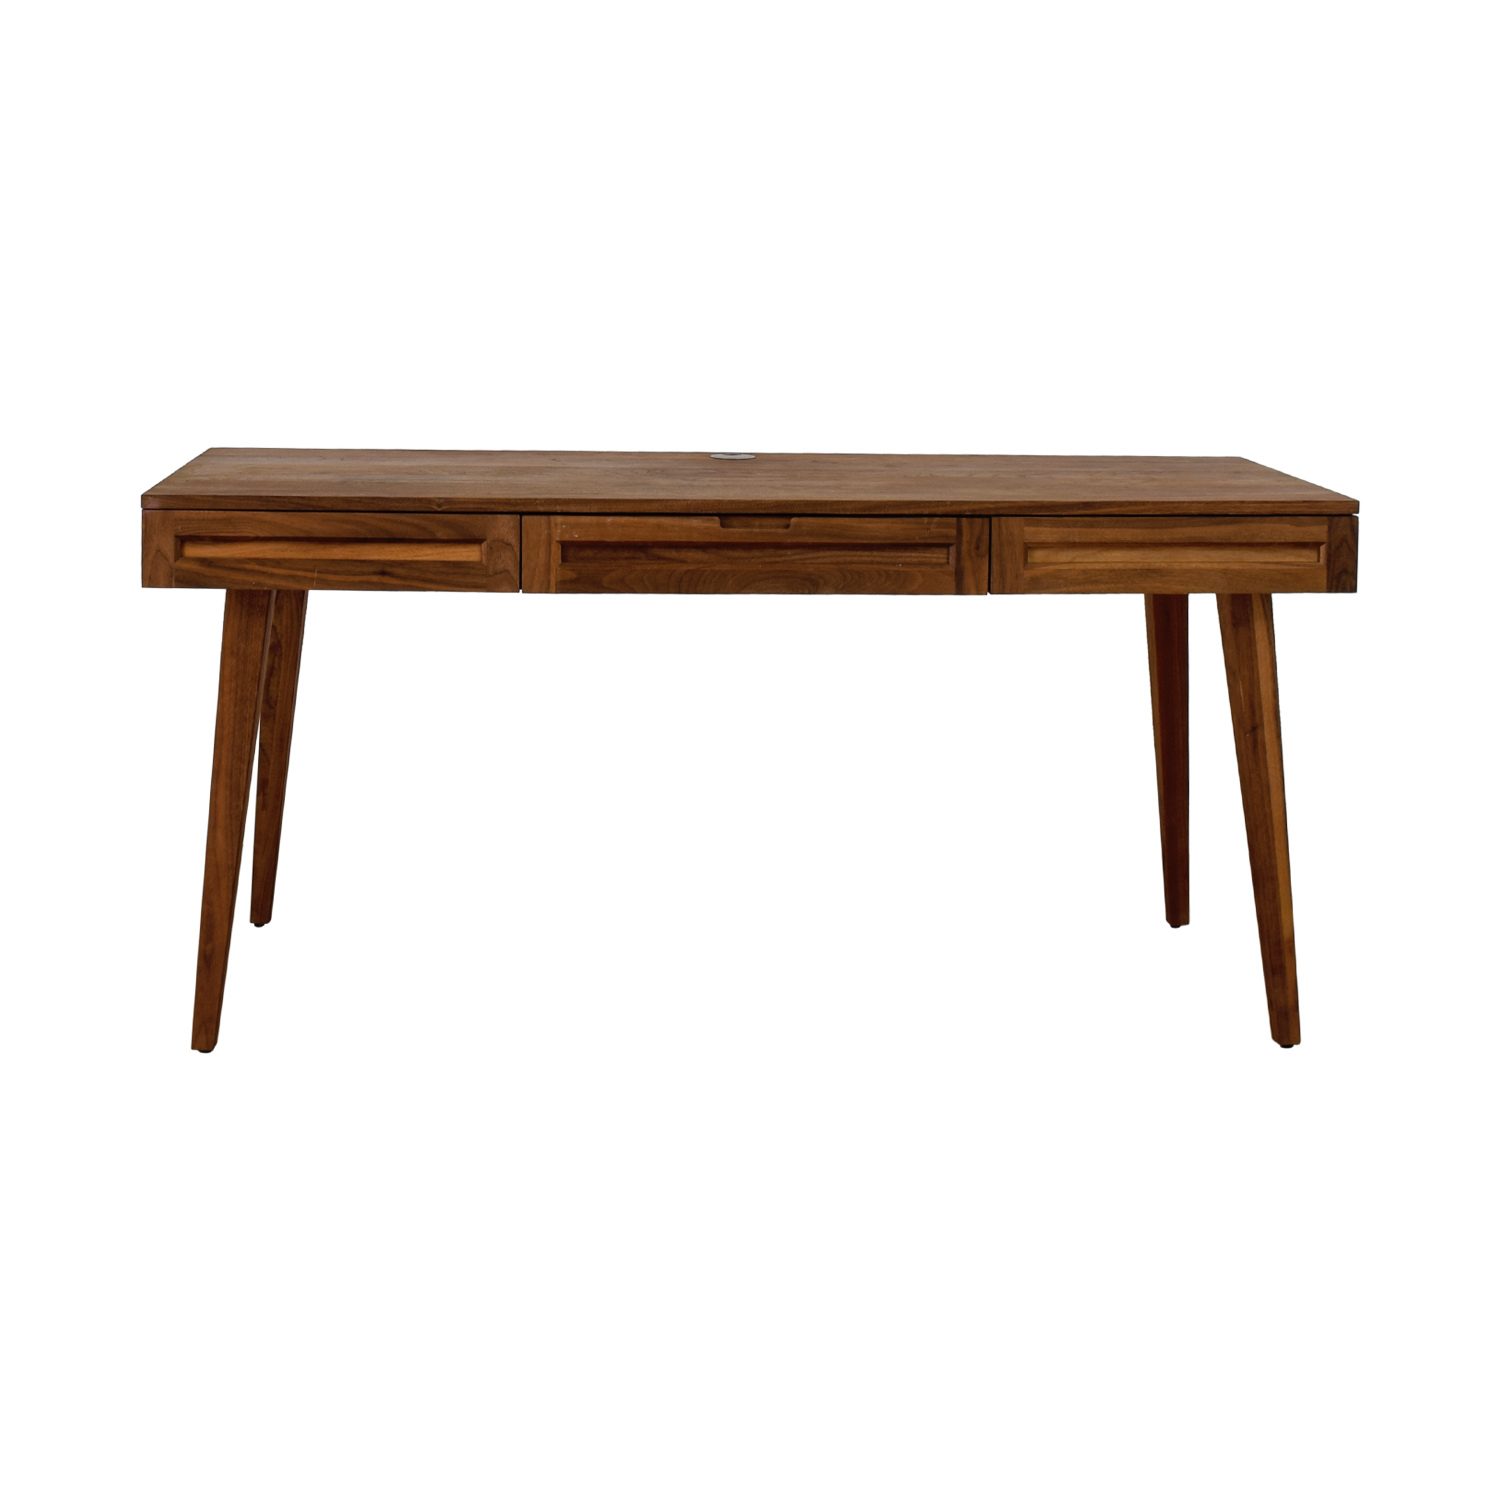 Highland Collection Highland Collection Maple Wood Desk dimensions